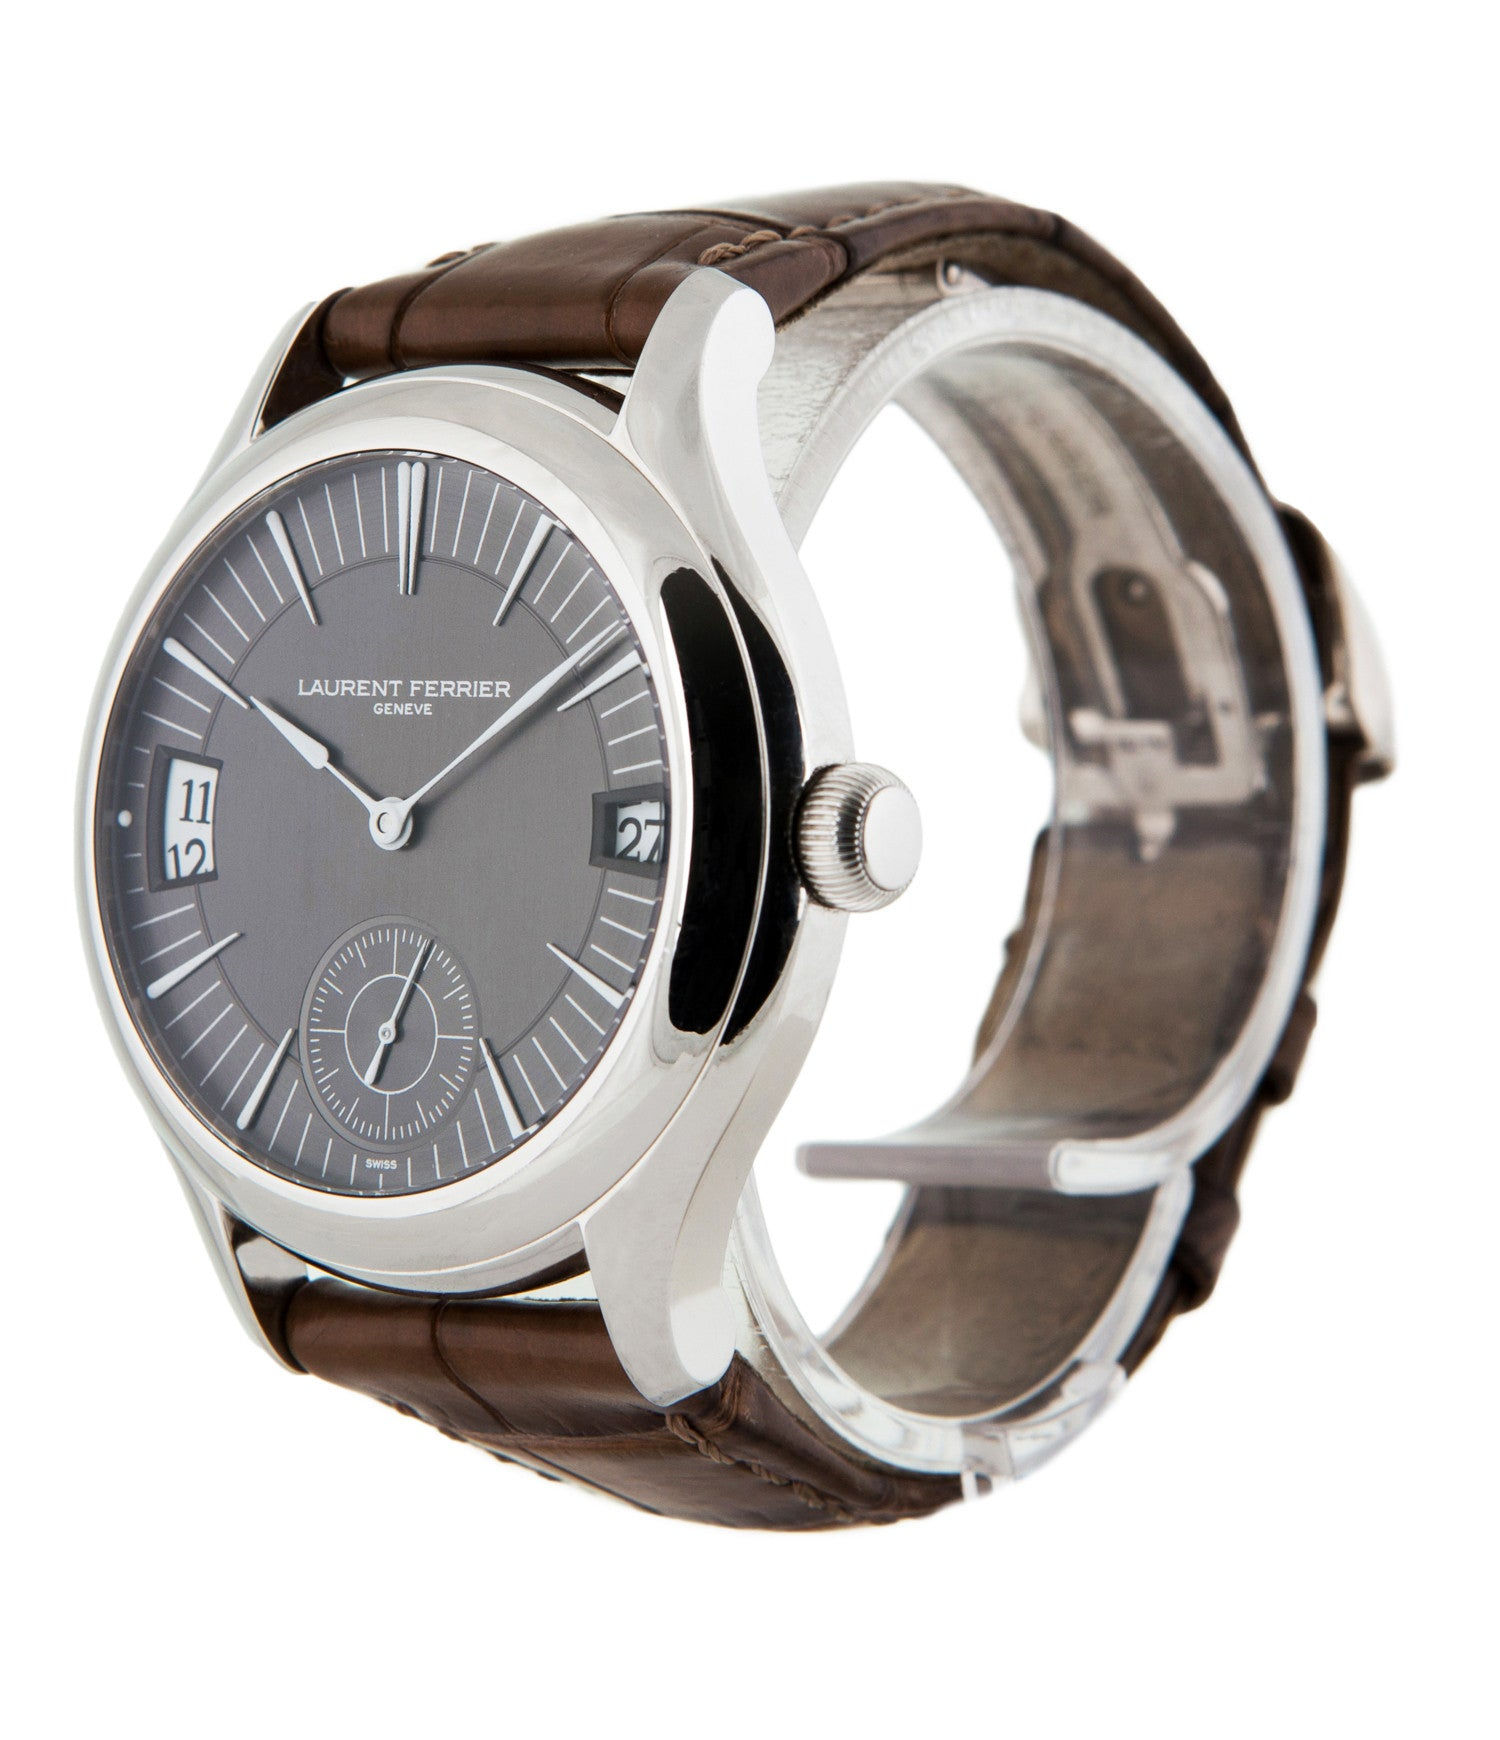 prototype Laurent Ferrier Galet Traveller LCF 007-AC unique stainless steel automatic Cal. LF 230.01 authentic pre-owned rare luxury dress watch from 2013 with solid silver dial and applied 18K white gold indexes dial side shot